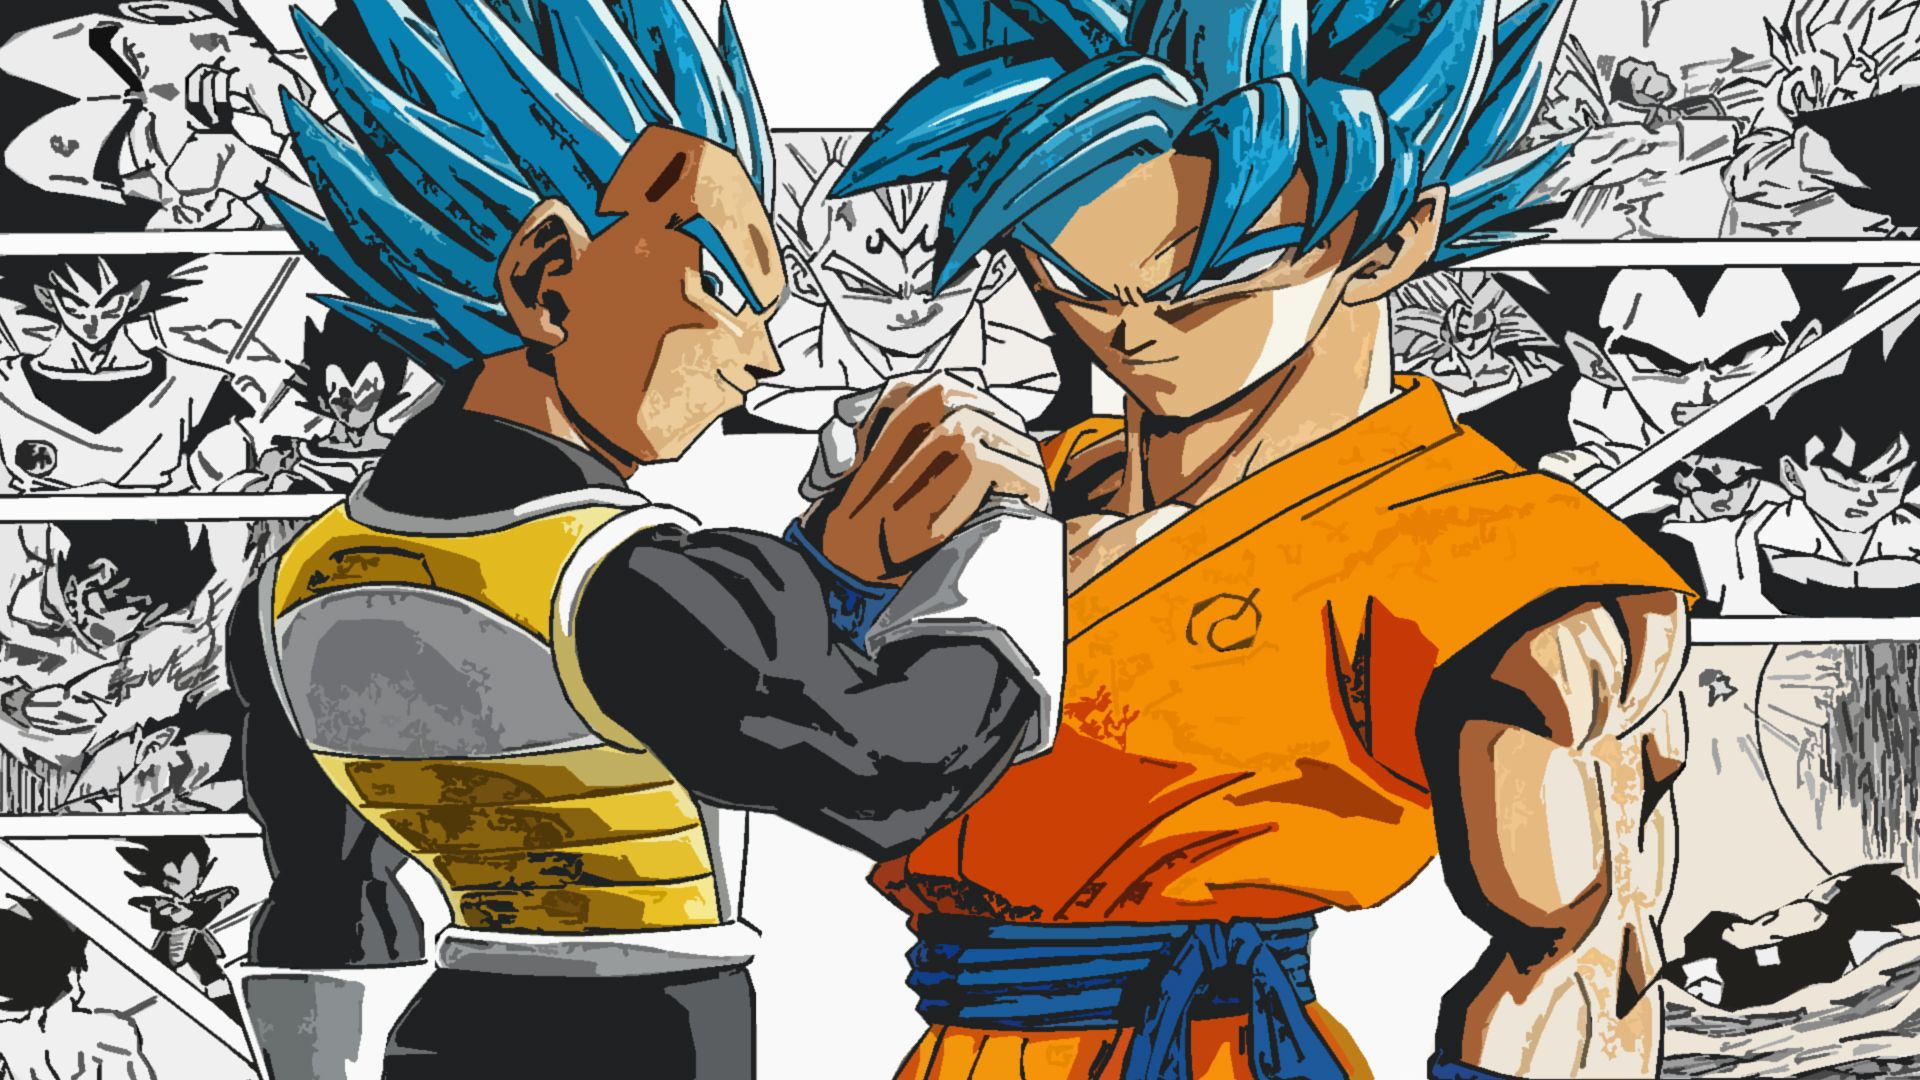 Super Saiyan Blue Goku And Vegeta 1920x1080 Need Iphone 6s Plus Wallpaper Background For Iphone6splus Follow I Dragones Dragon Ball Dragon Ball Super